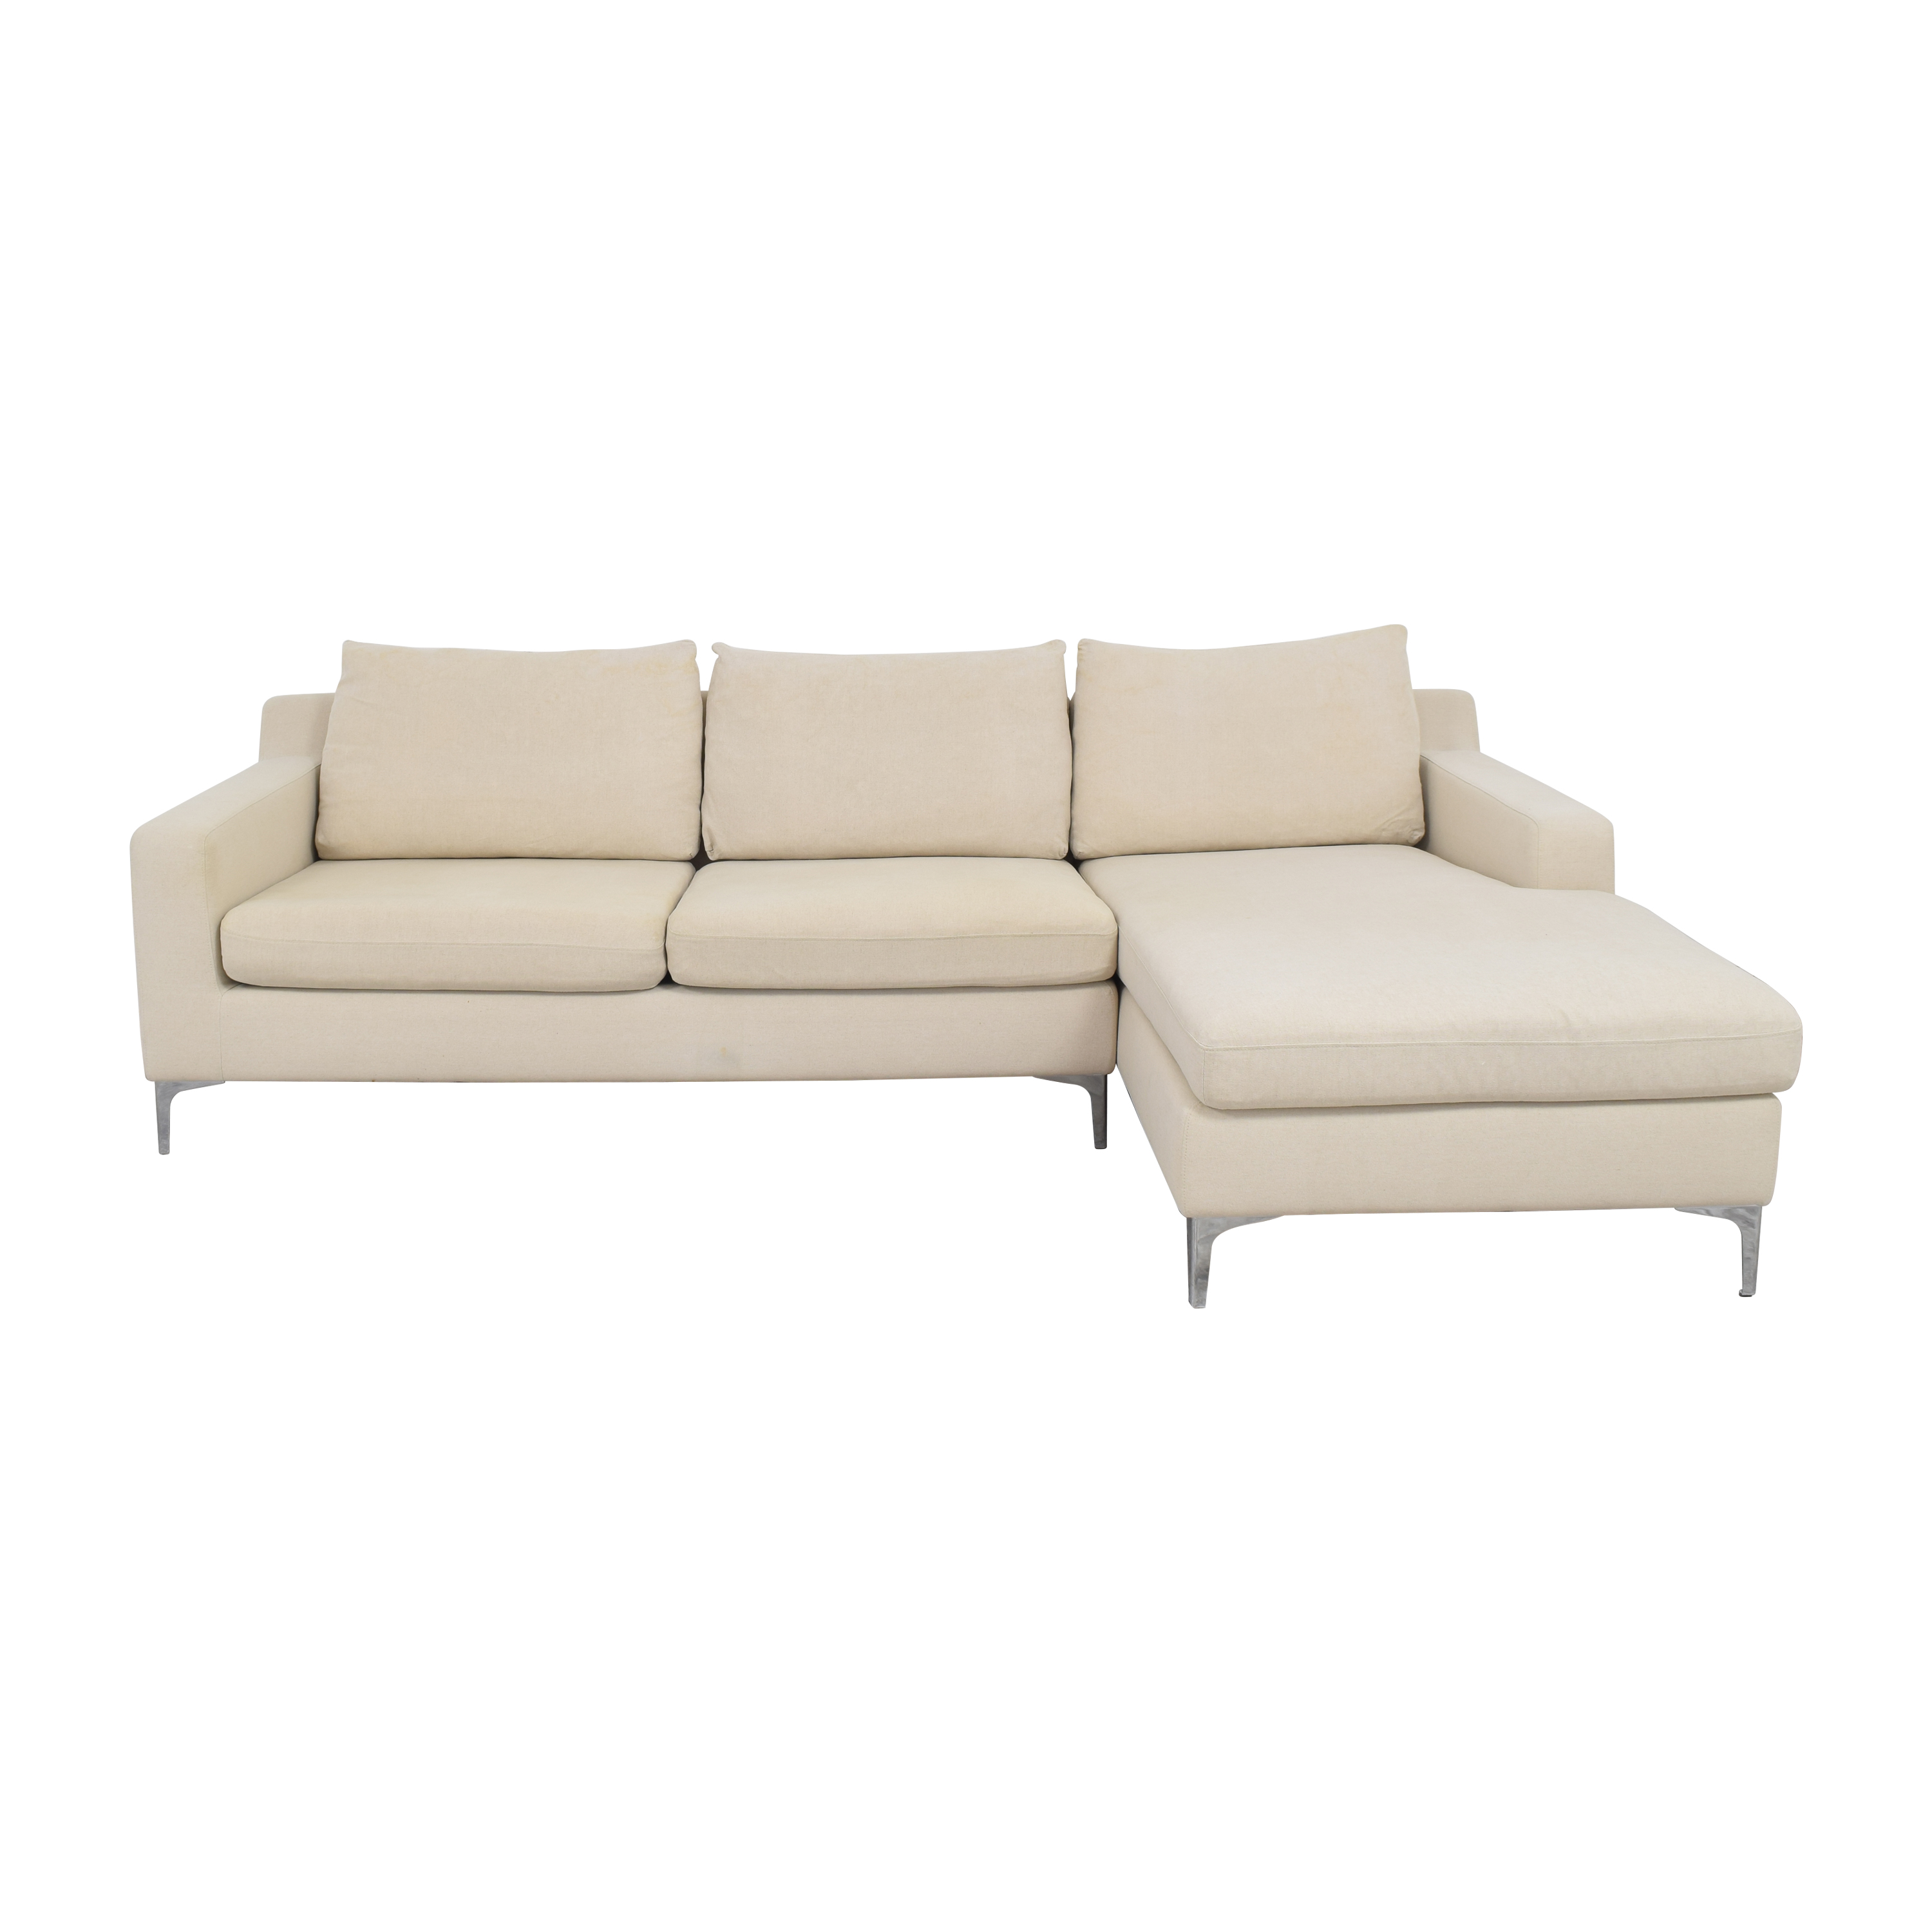 Interior Define Interior Define Sloan Sectional Sofa with Chaise nj